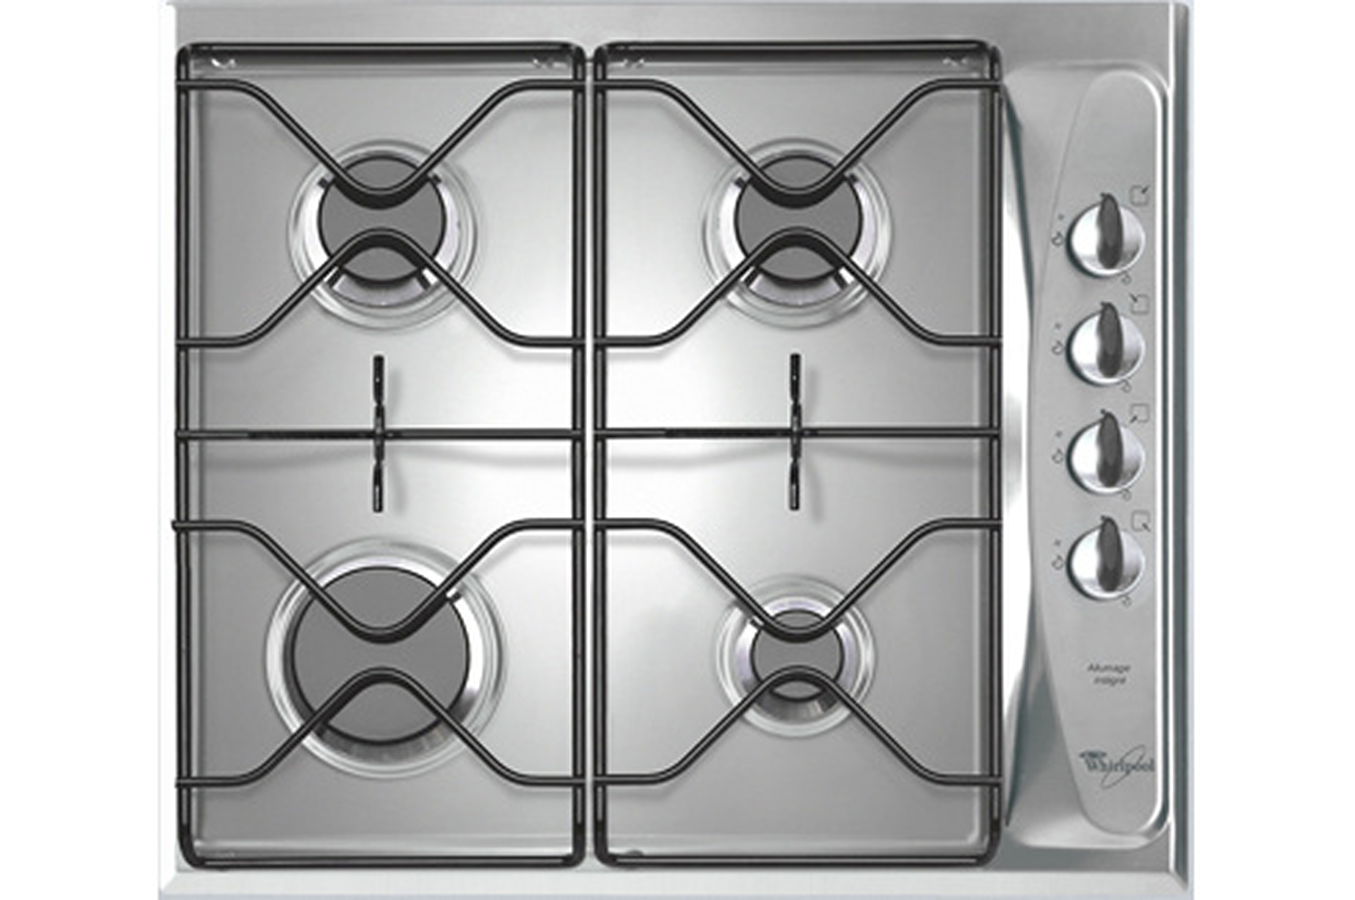 Plaque gaz whirlpool akm260ix akm 260 ix 3722740 darty - Table de cuisson gaz inox ...